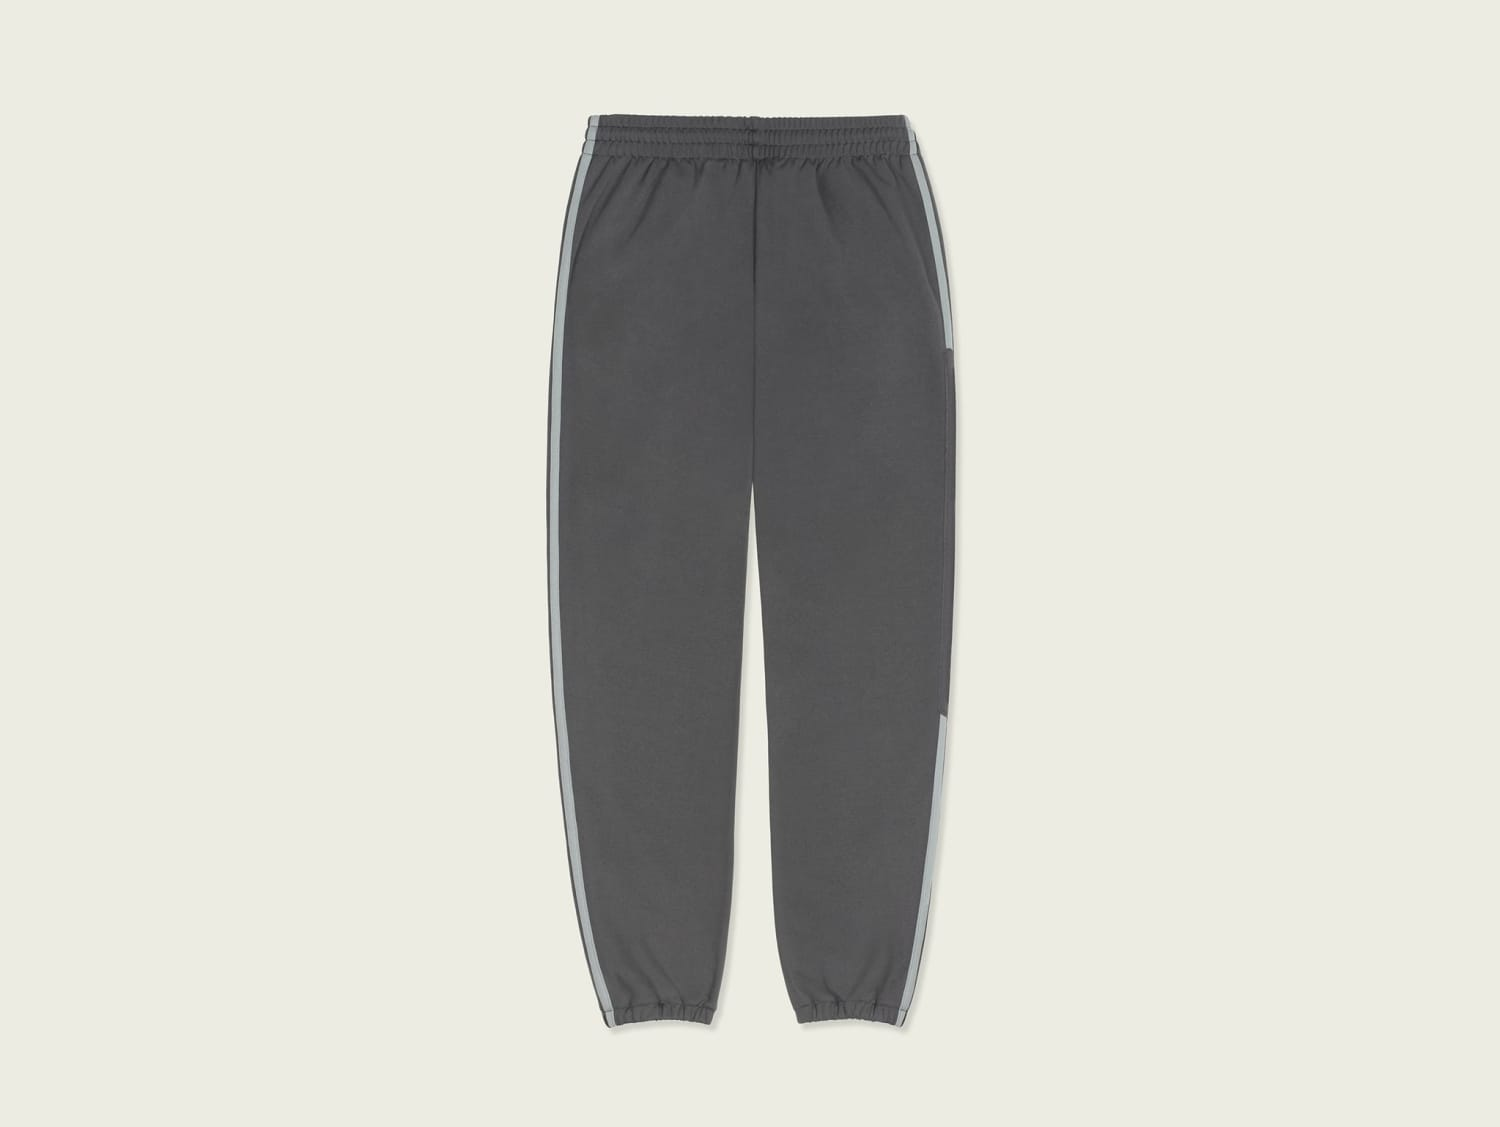 adidas + KANYE WEST CALABASAS TRACK PANT in Luna/Wolves & Ink/Wolves (DY0567/DY0572)